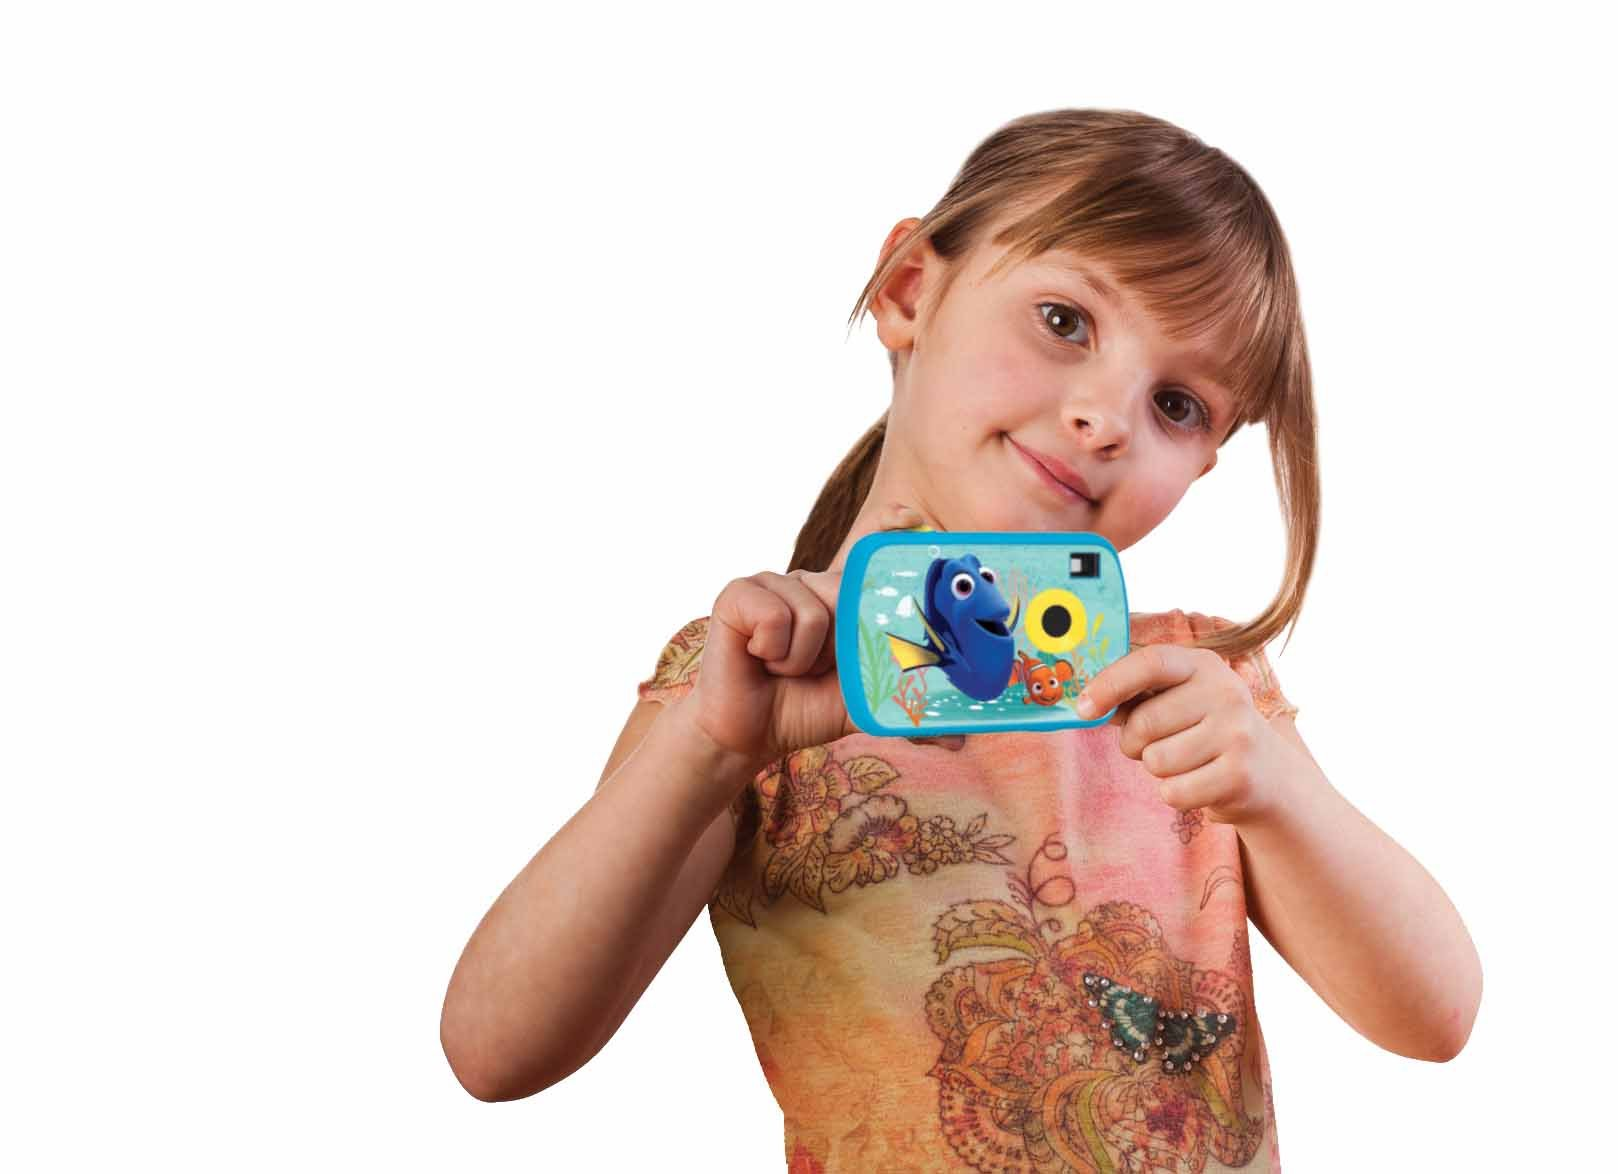 Finding Nemo Dory 1.3MP Digital Camera by Finding Dory (Image #6)